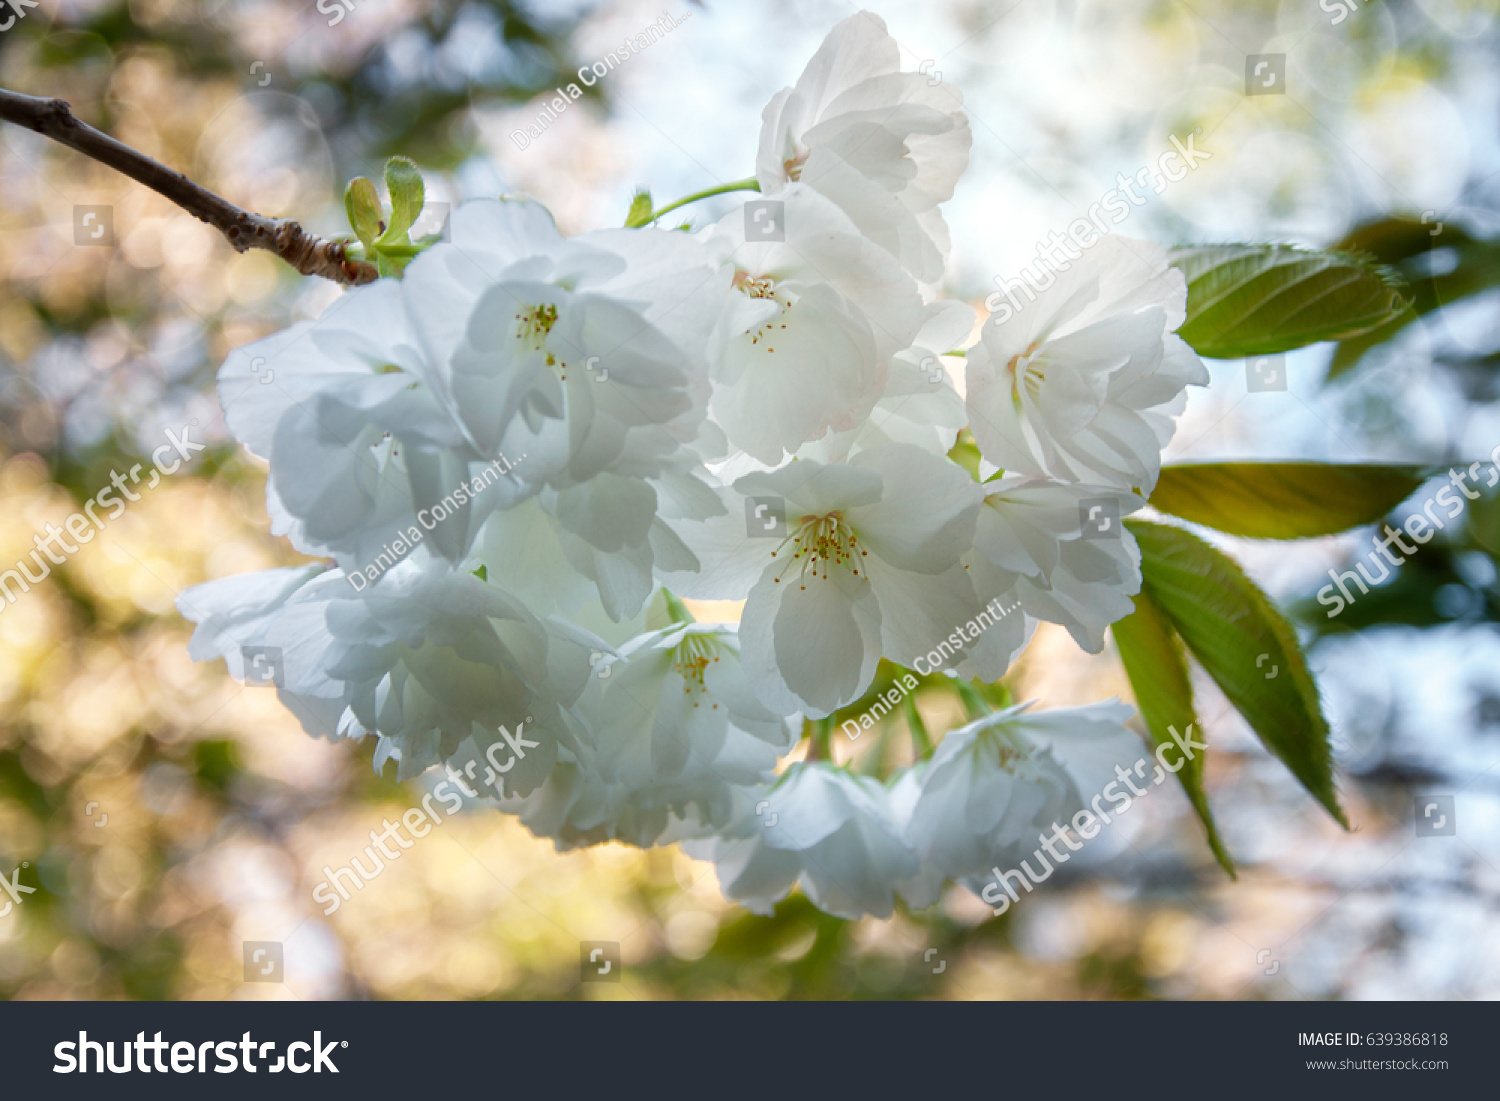 Backlit Delicate White Flowers On A Tree Branch In Dappled Bokeh